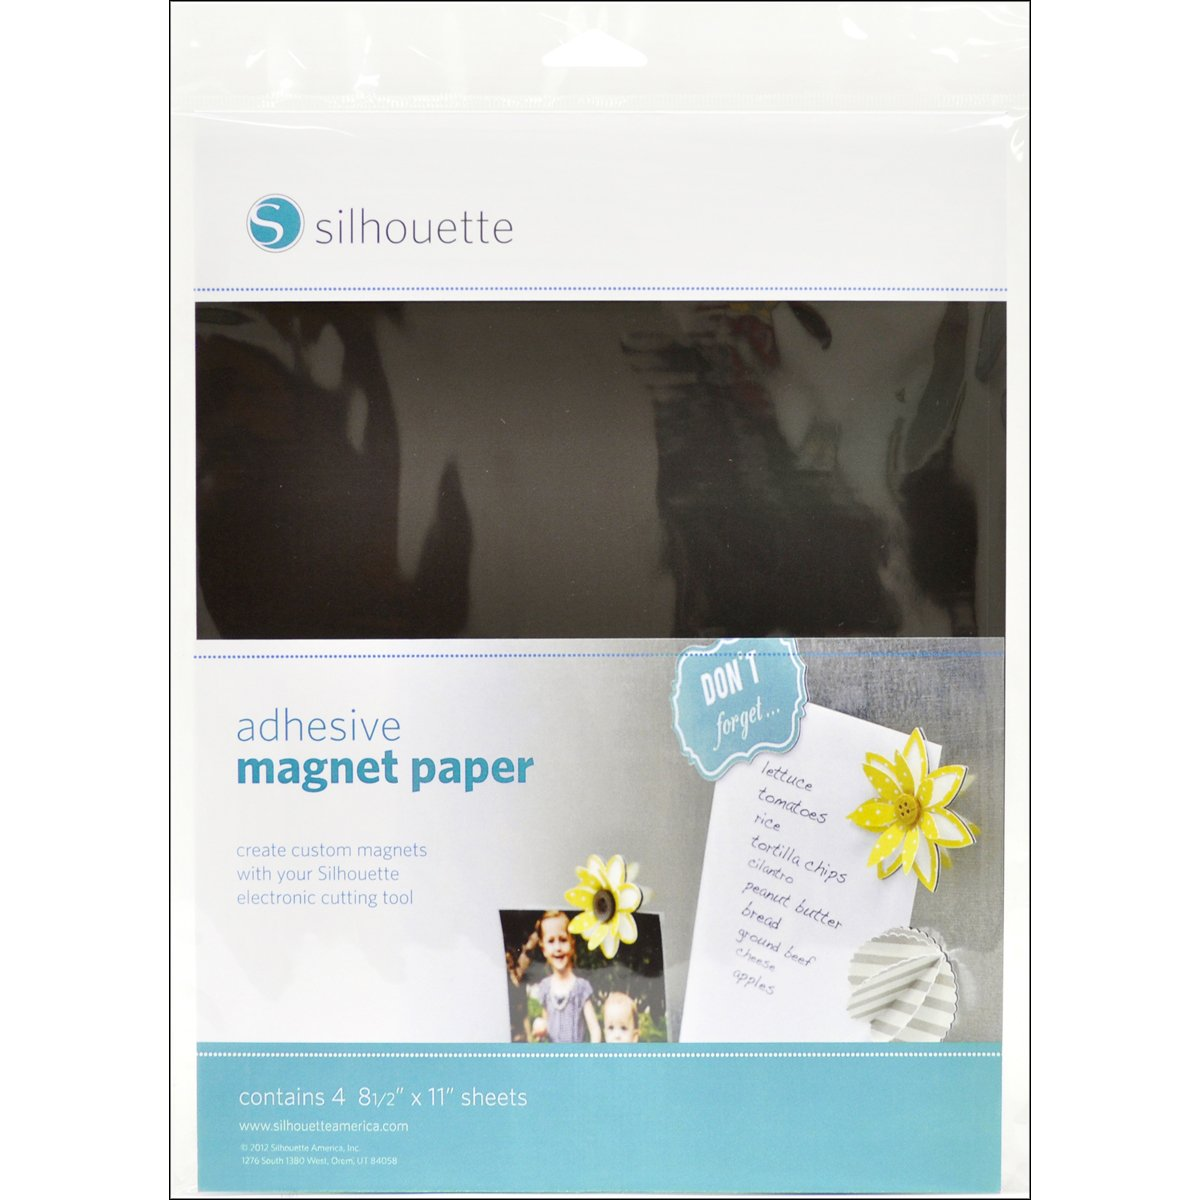 Silhouette Adhesive Magnet Paper Silhouette America Inc. MEDIA-MAGNET-ADH